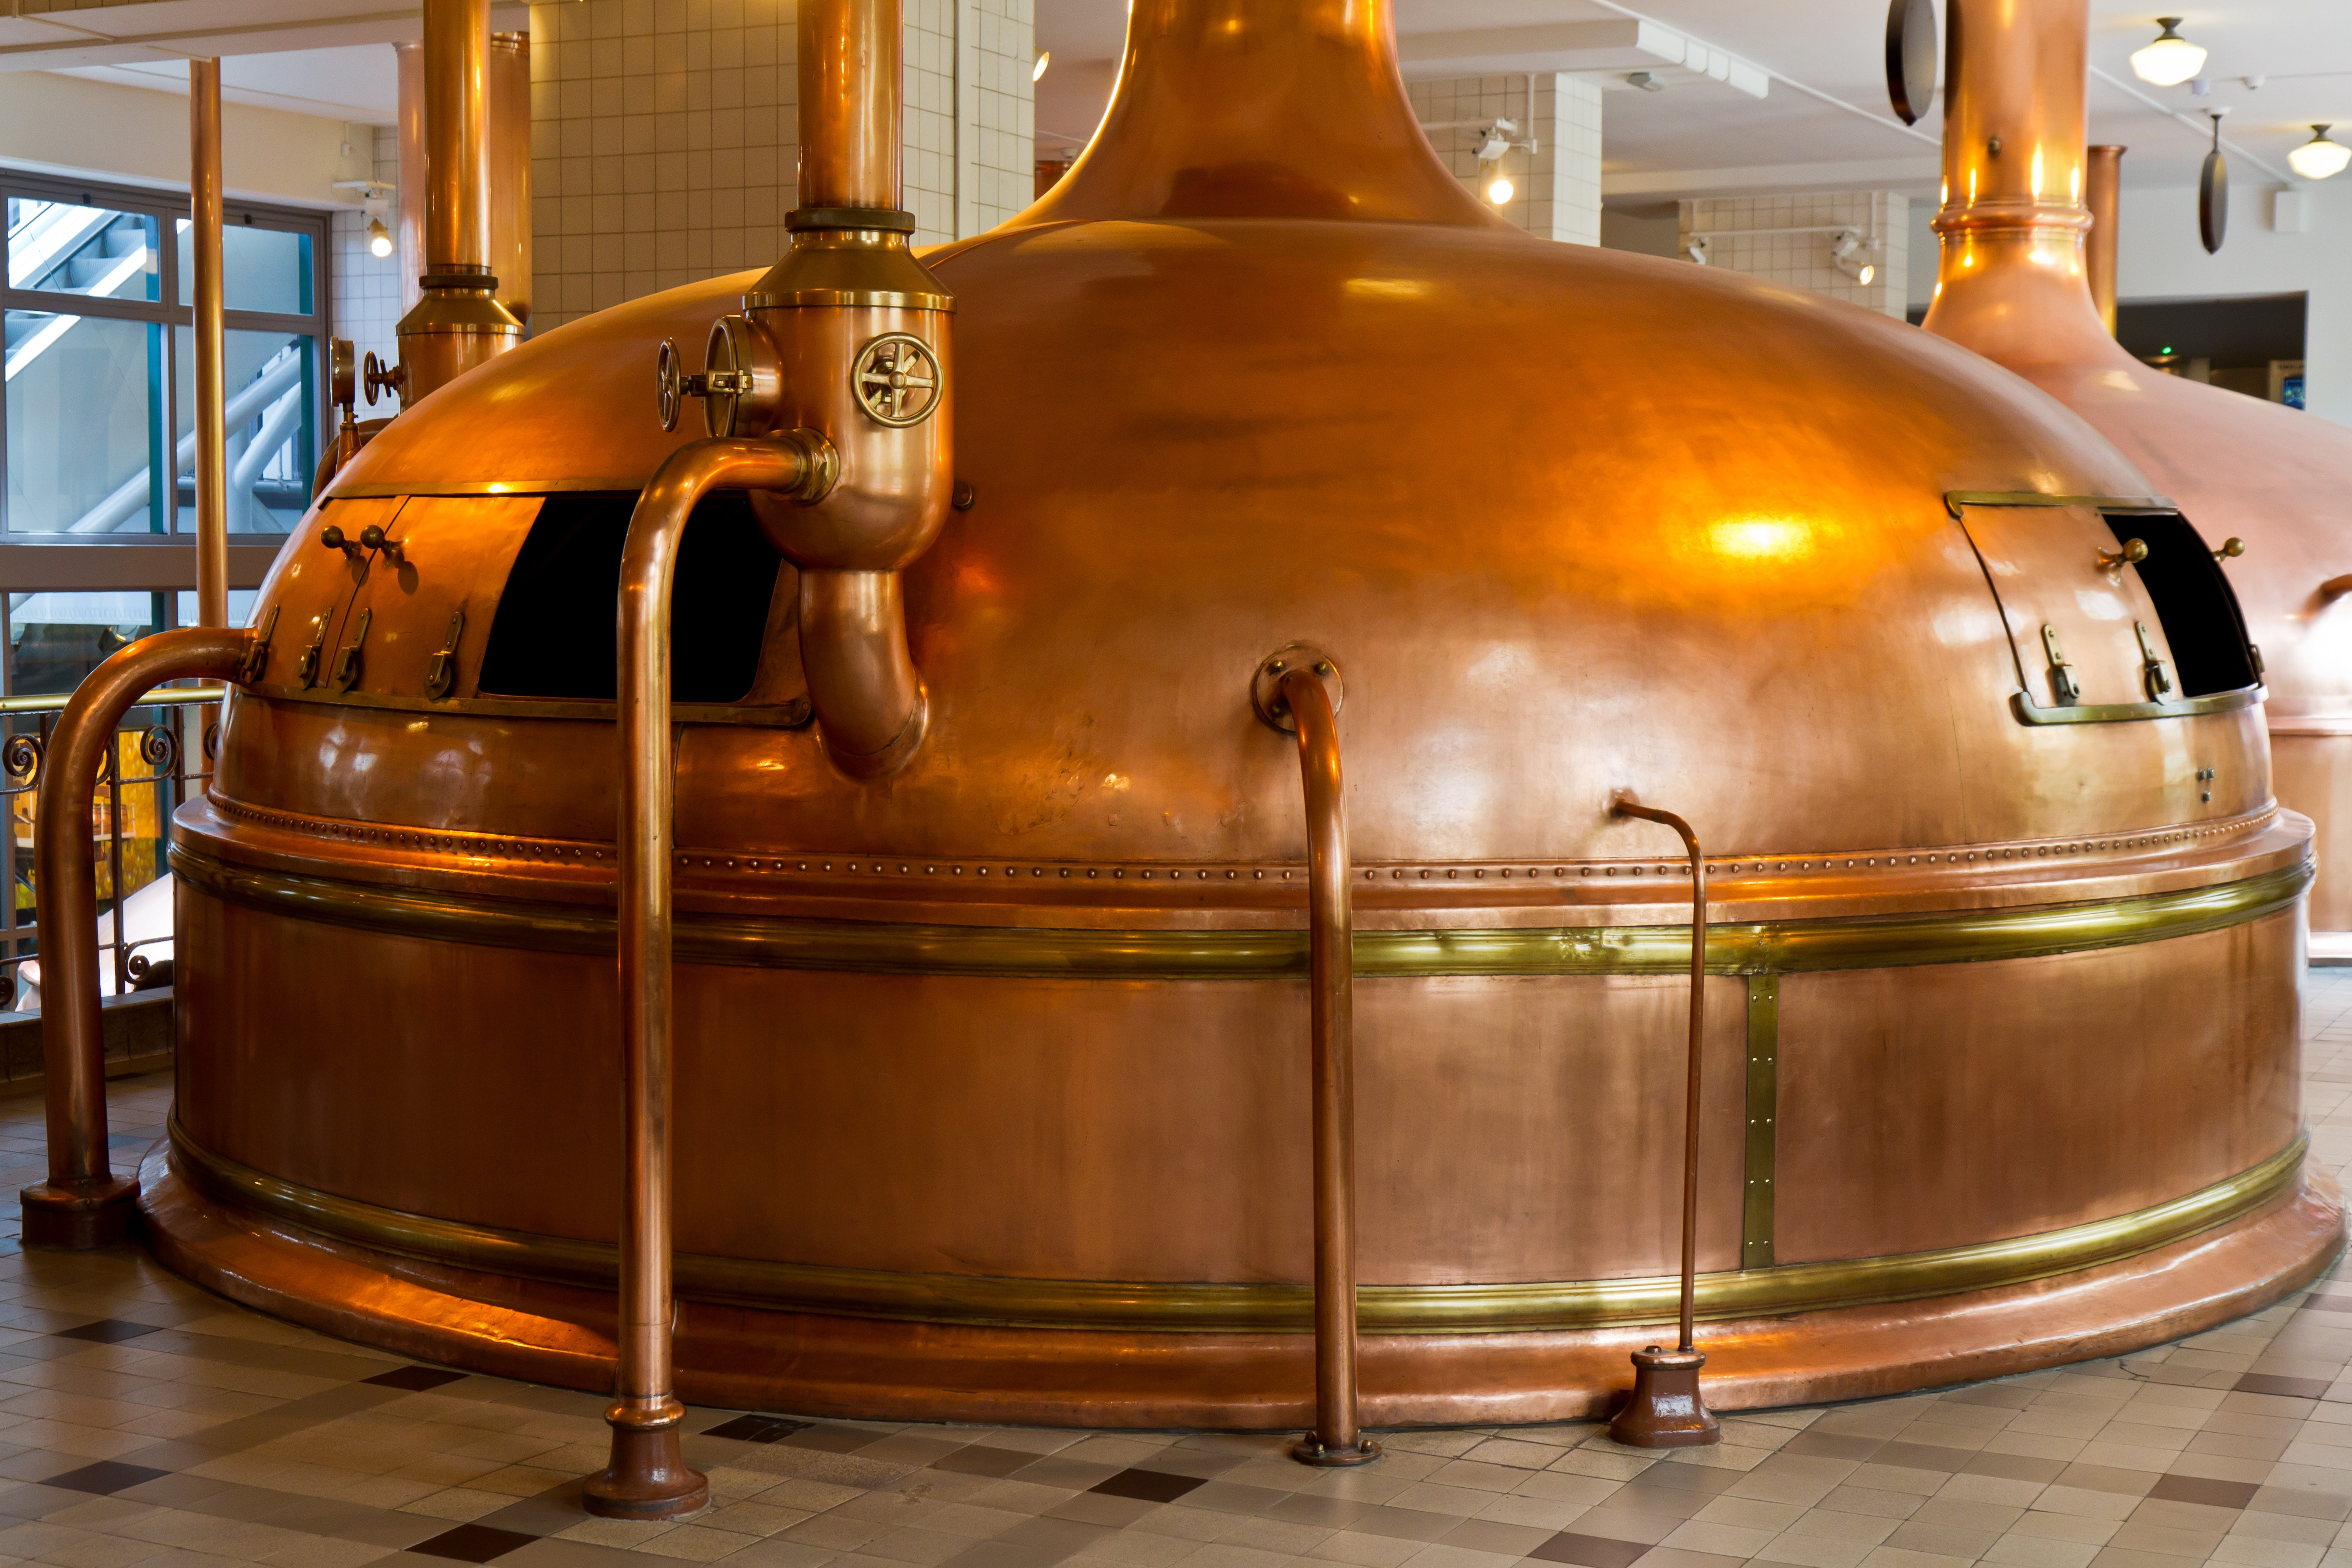 Join us at the CCBA Fall Conference for Advanced Seminars on Quality and Technical Brewing